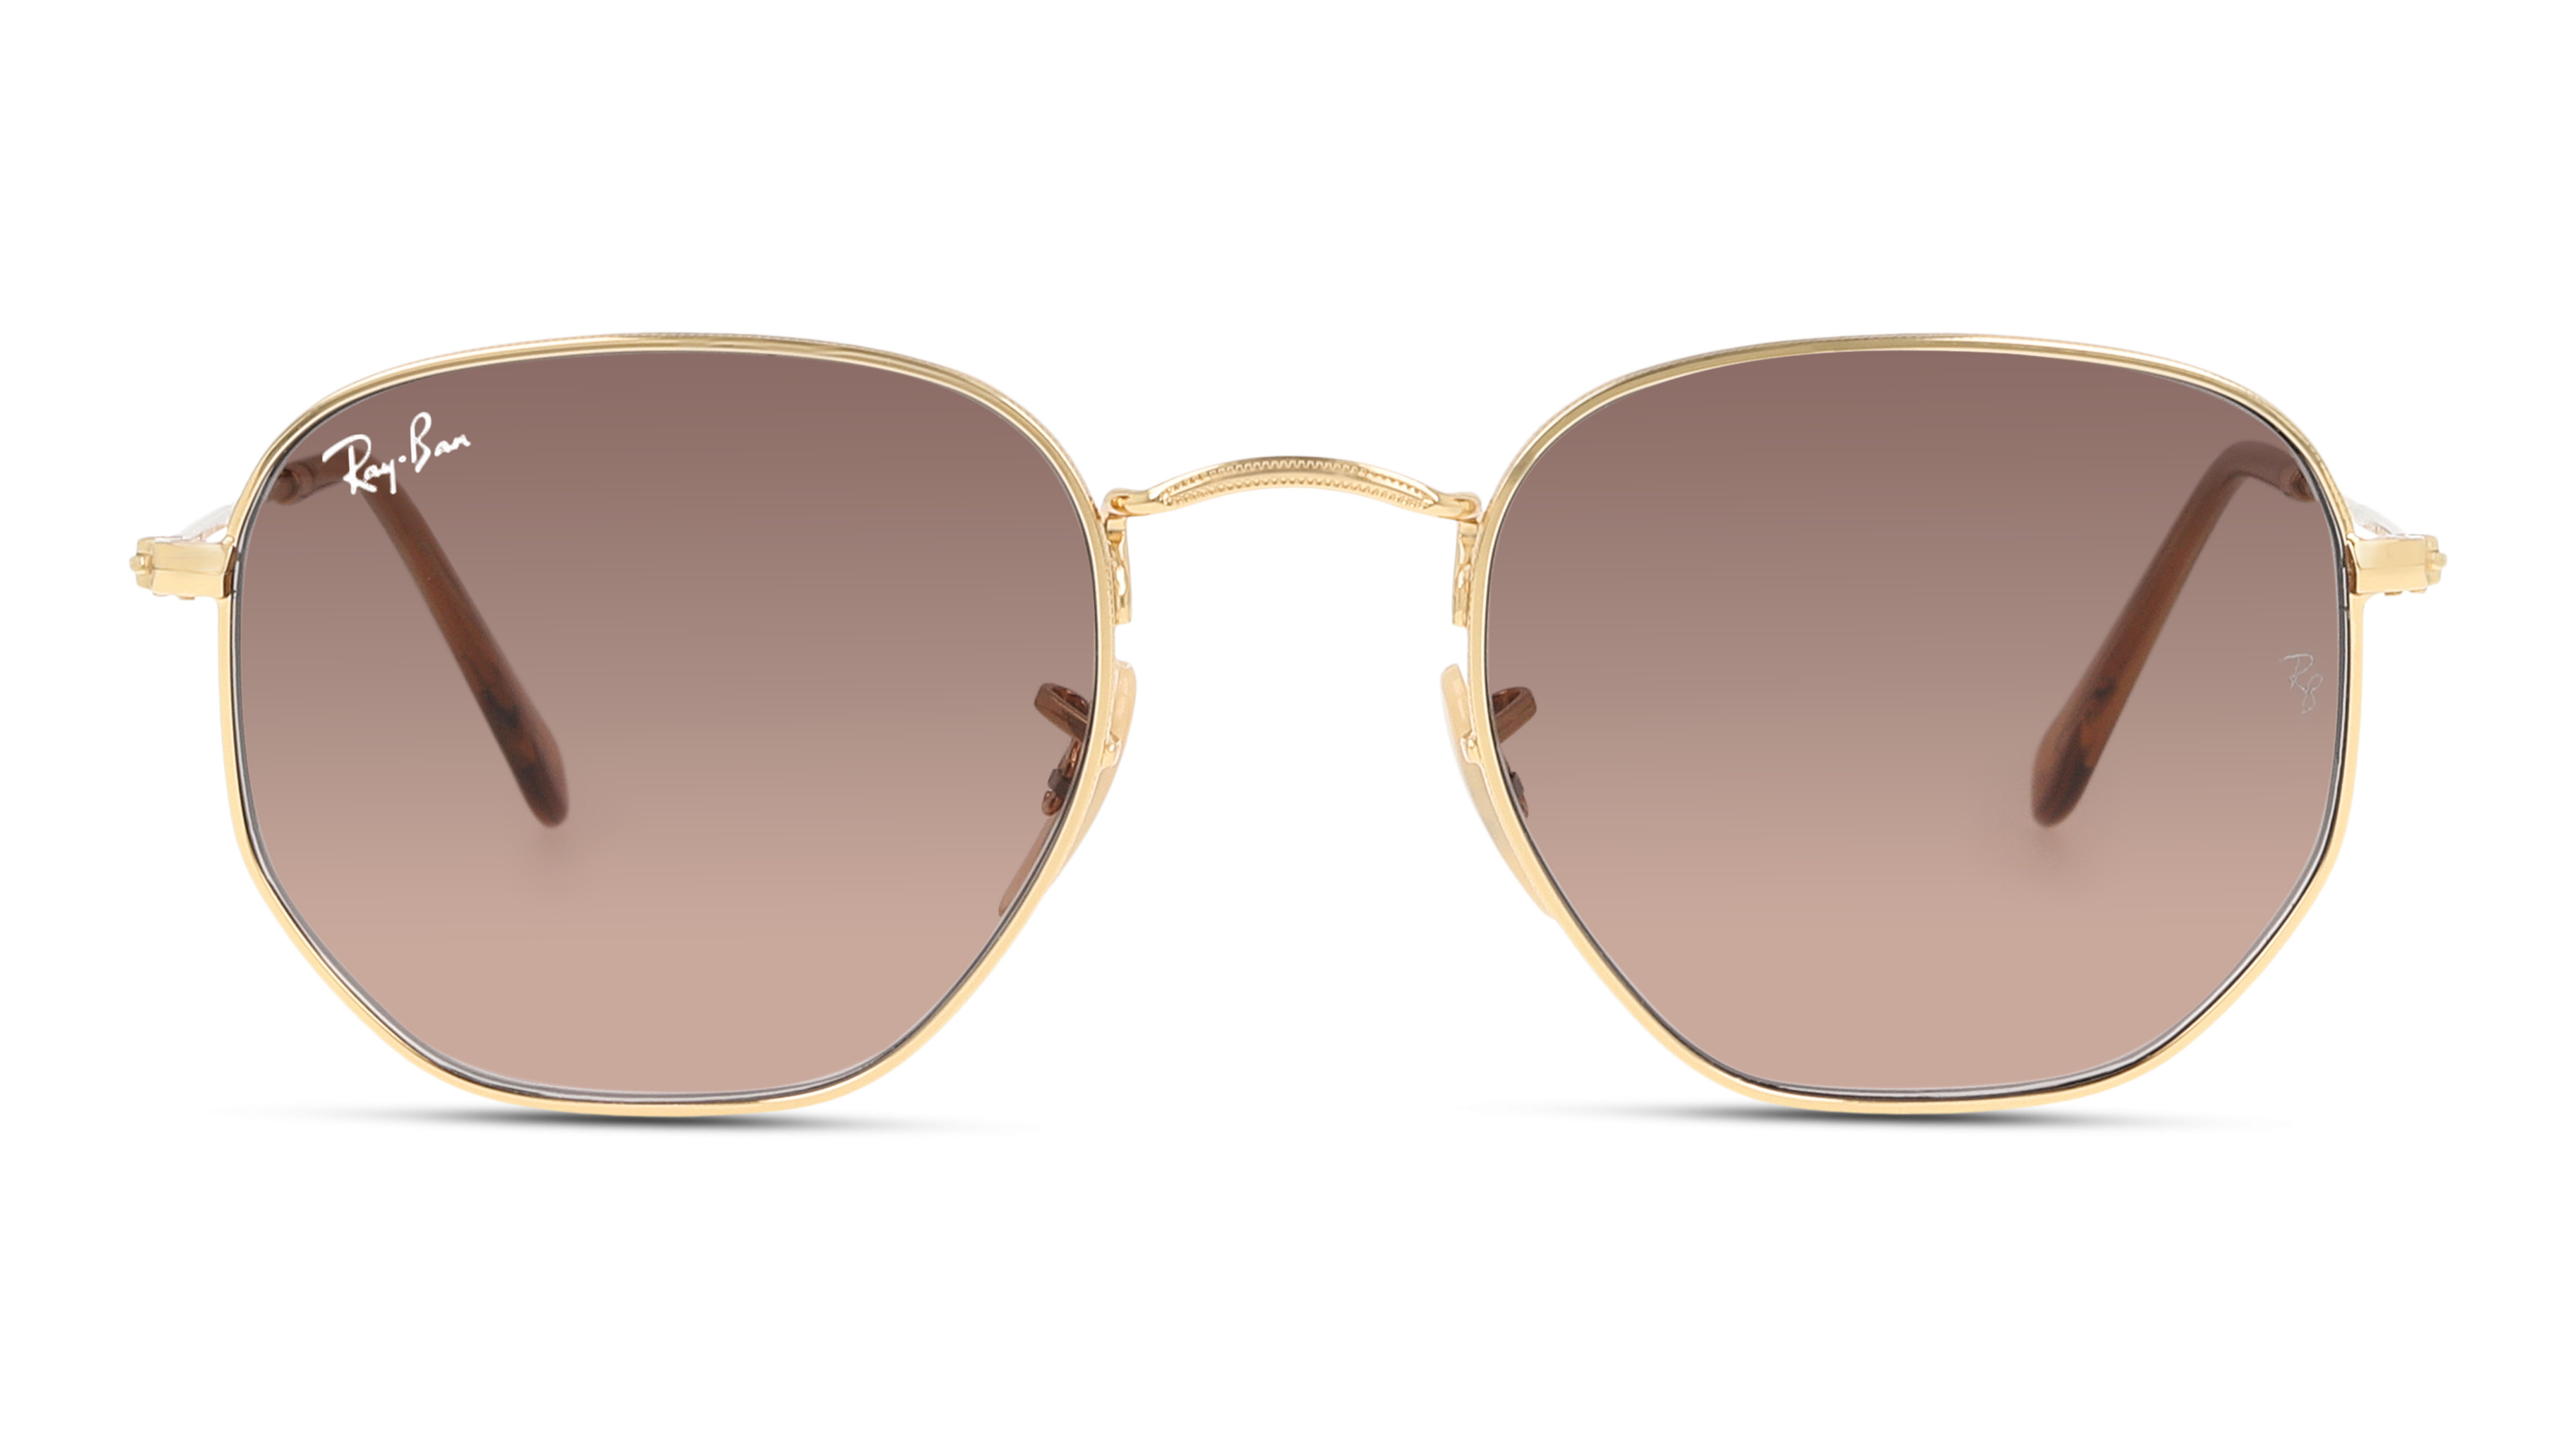 8056597077378-front-01-ray-ban-0rb3548n-HEXAGONAL-gold_1